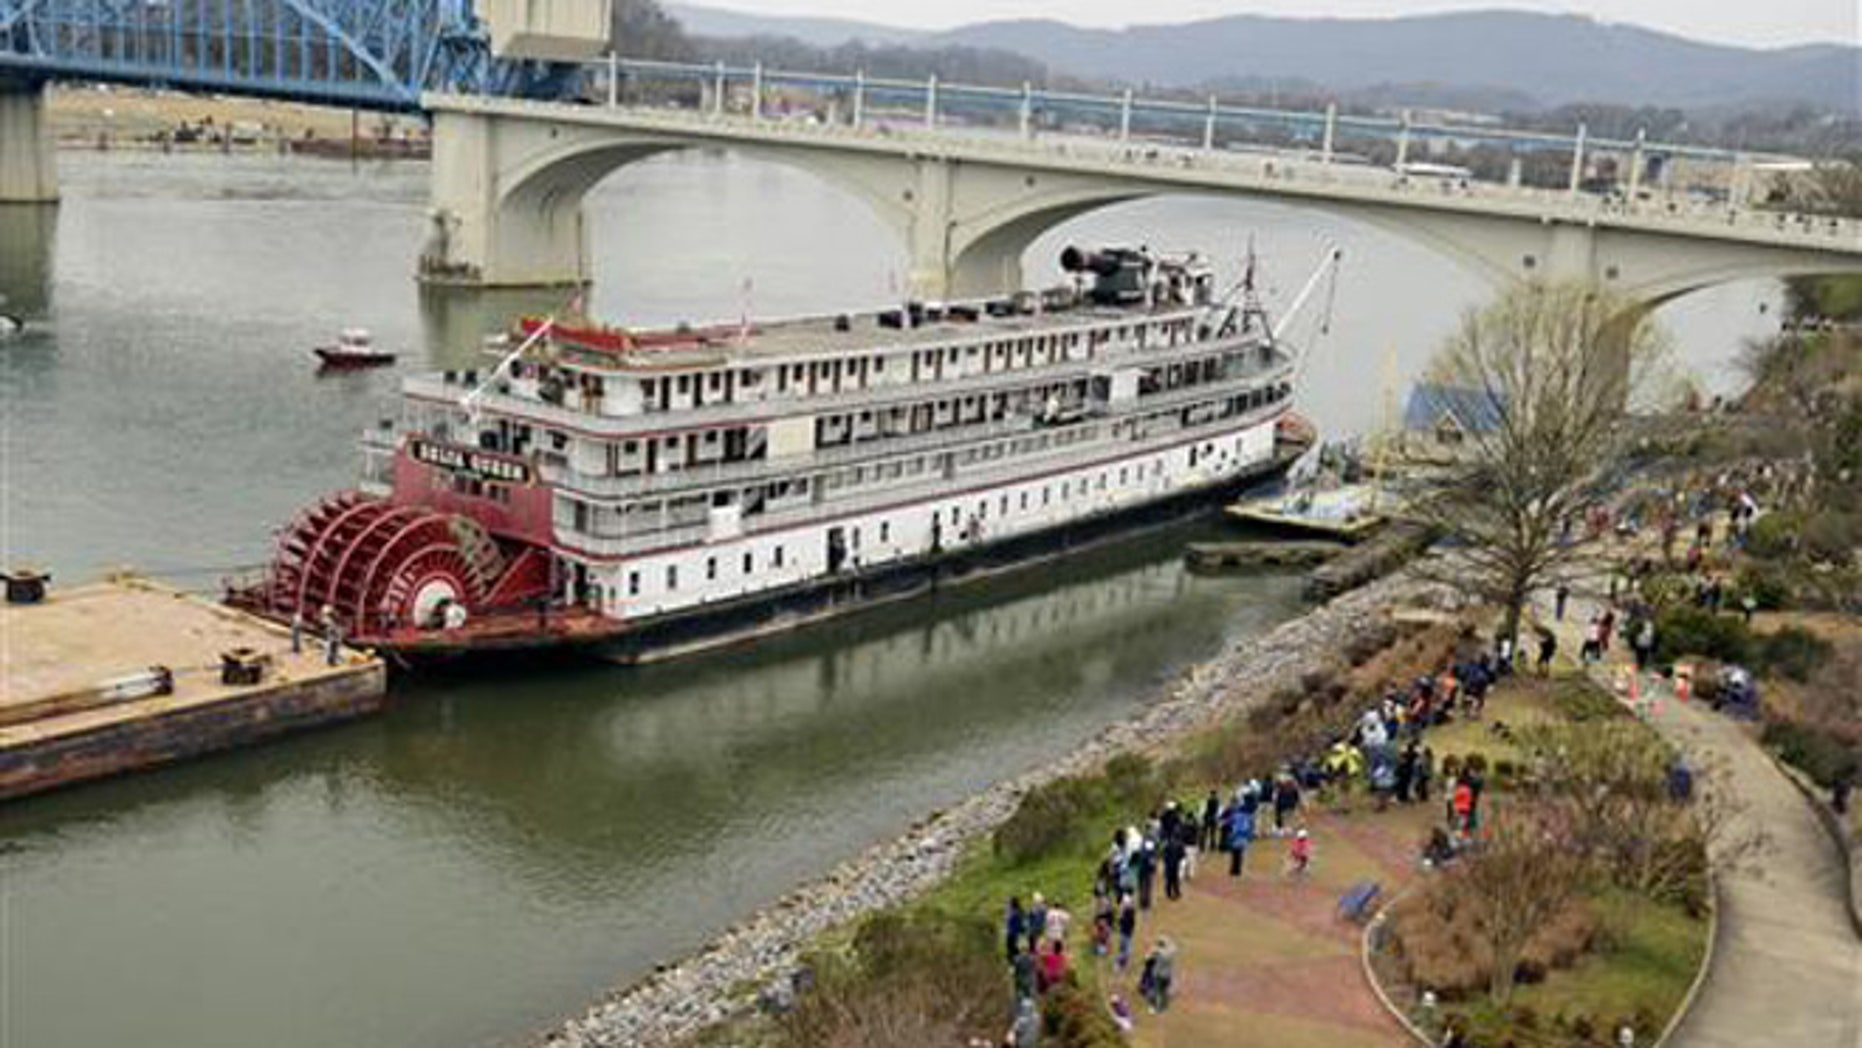 In this March 22, 2015 file photo, spectators line the bank of the Tennessee River as the Delta Queen riverboat waits to depart from Chattanooga, Tenn., on its way to Louisiana for restoration.